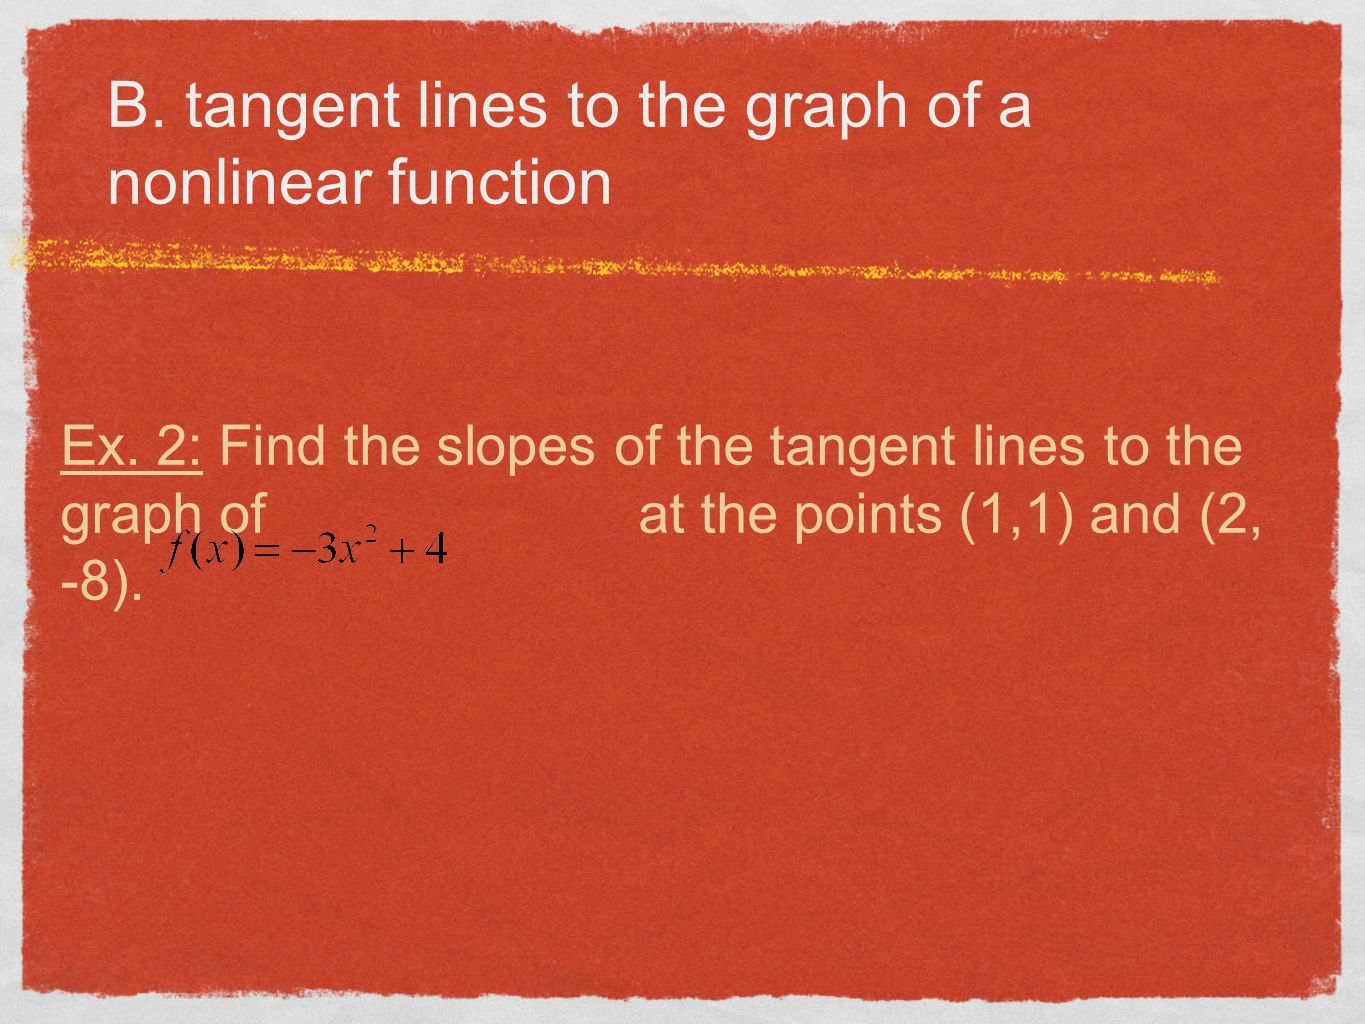 You Try: Find the slopes of the tangent lines to the graph of at the points (1, 1) and (-2, - 14).